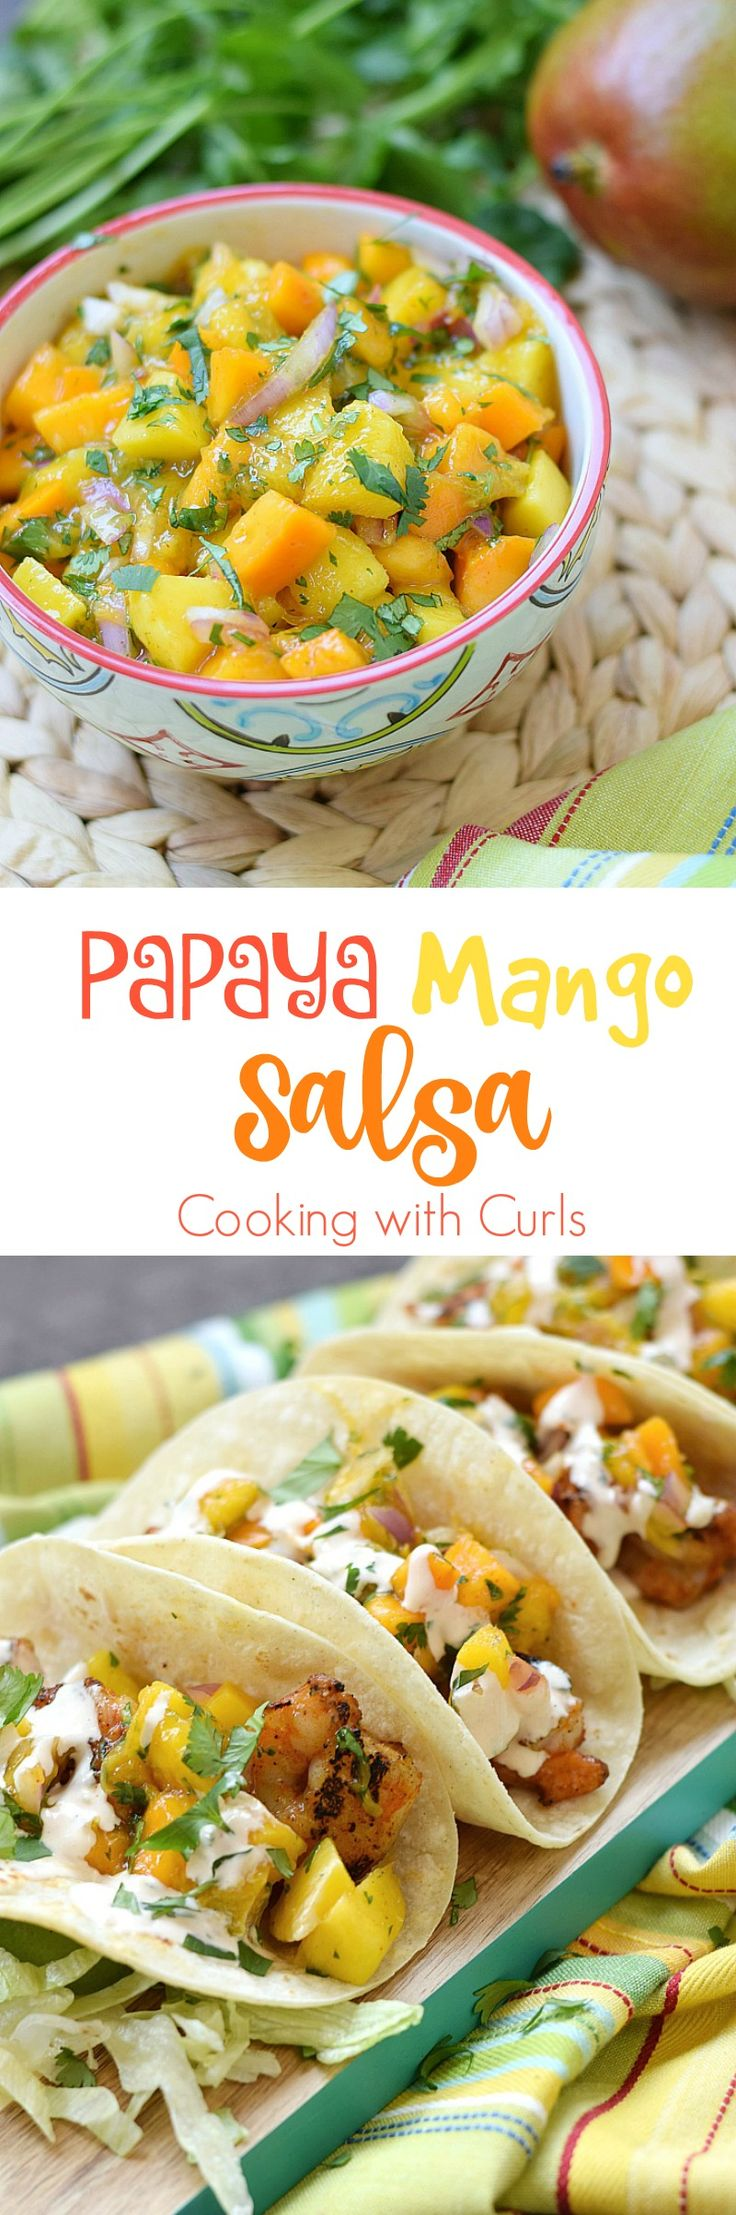 This Papaya Mango Salsa makes a perfect dip for chips, and an even better topping for seafood | cookingwithcurls.com